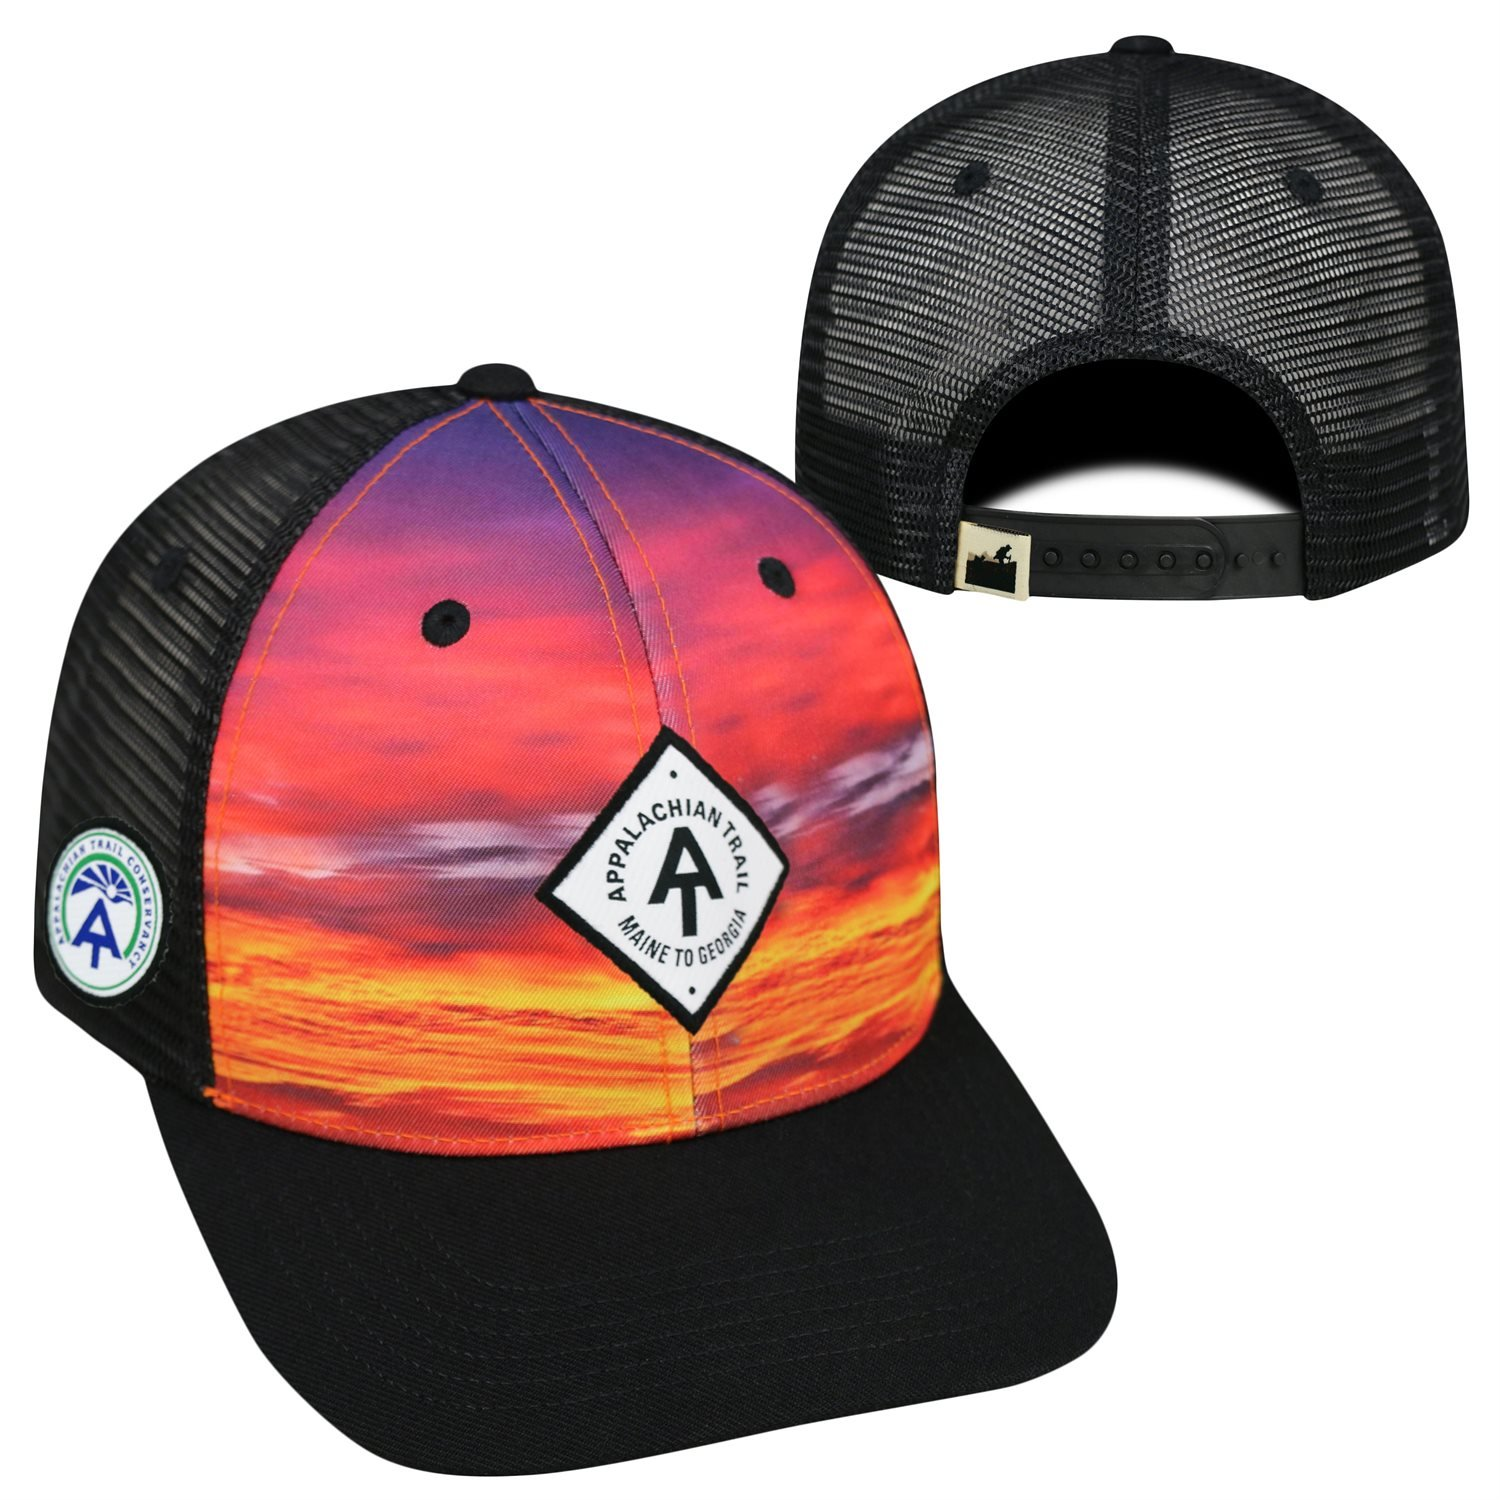 ec647353f8f Amazon.com  Top of the World Appalachian Trail Conservancy Official  Adjustable Skyline 1 Hat Cap Mesh Flat Bill 318790  Sports   Outdoors